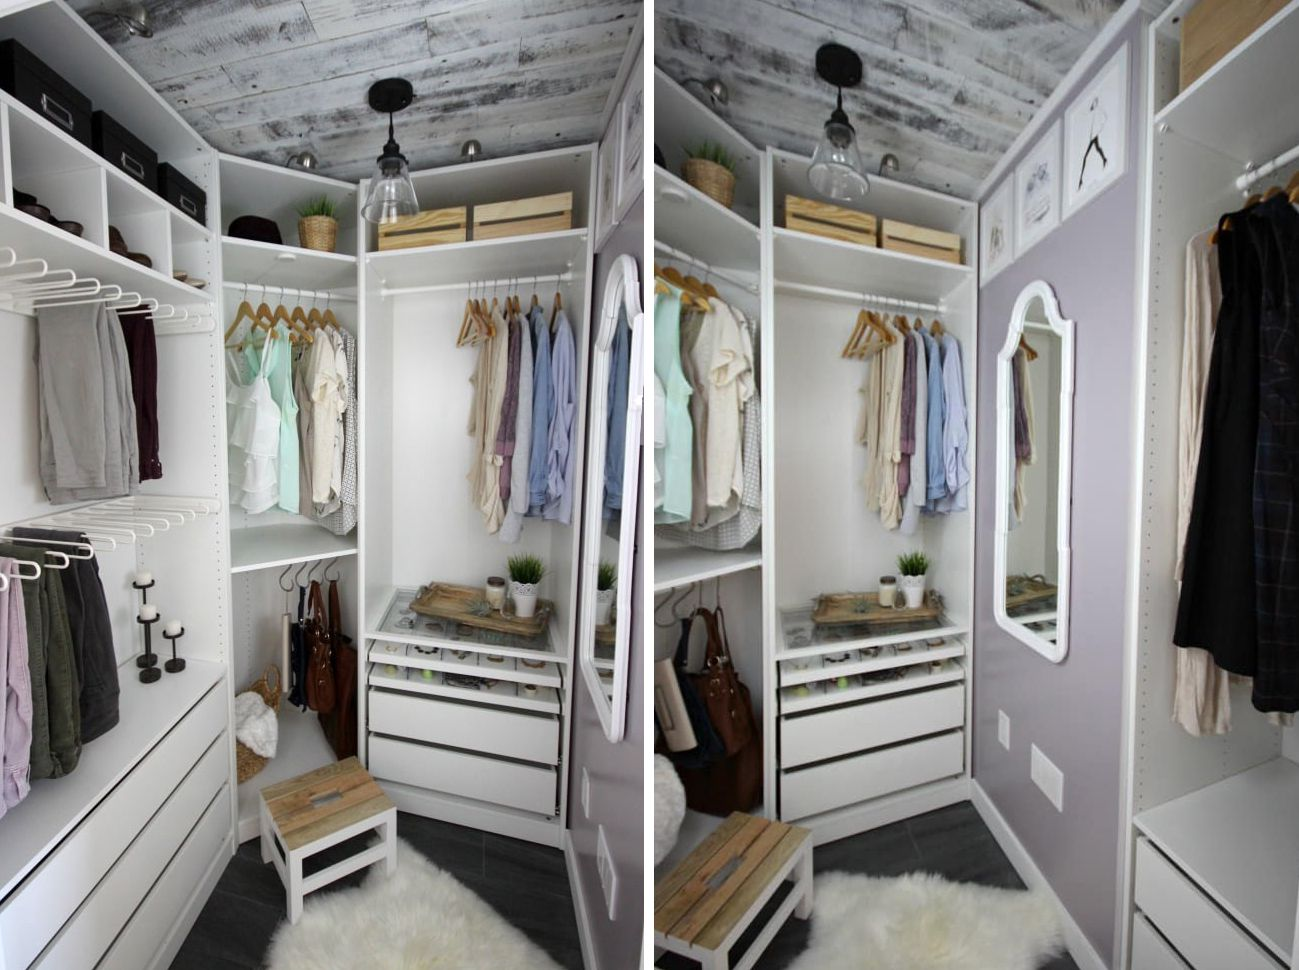 21 Best Small Walk-in Closet Storage Ideas for Bedrooms Closet Home Design on home shed design, home pantry design, home storage design, home shop design, home wardrobe design, home cabin design, home glass design, home stairway design, home den design, home fashion design, home corridor design, home air conditioning design, home ceiling design, home bookcase design, home cabinet design, home house design, home box design, home pillow design, home depot closets,